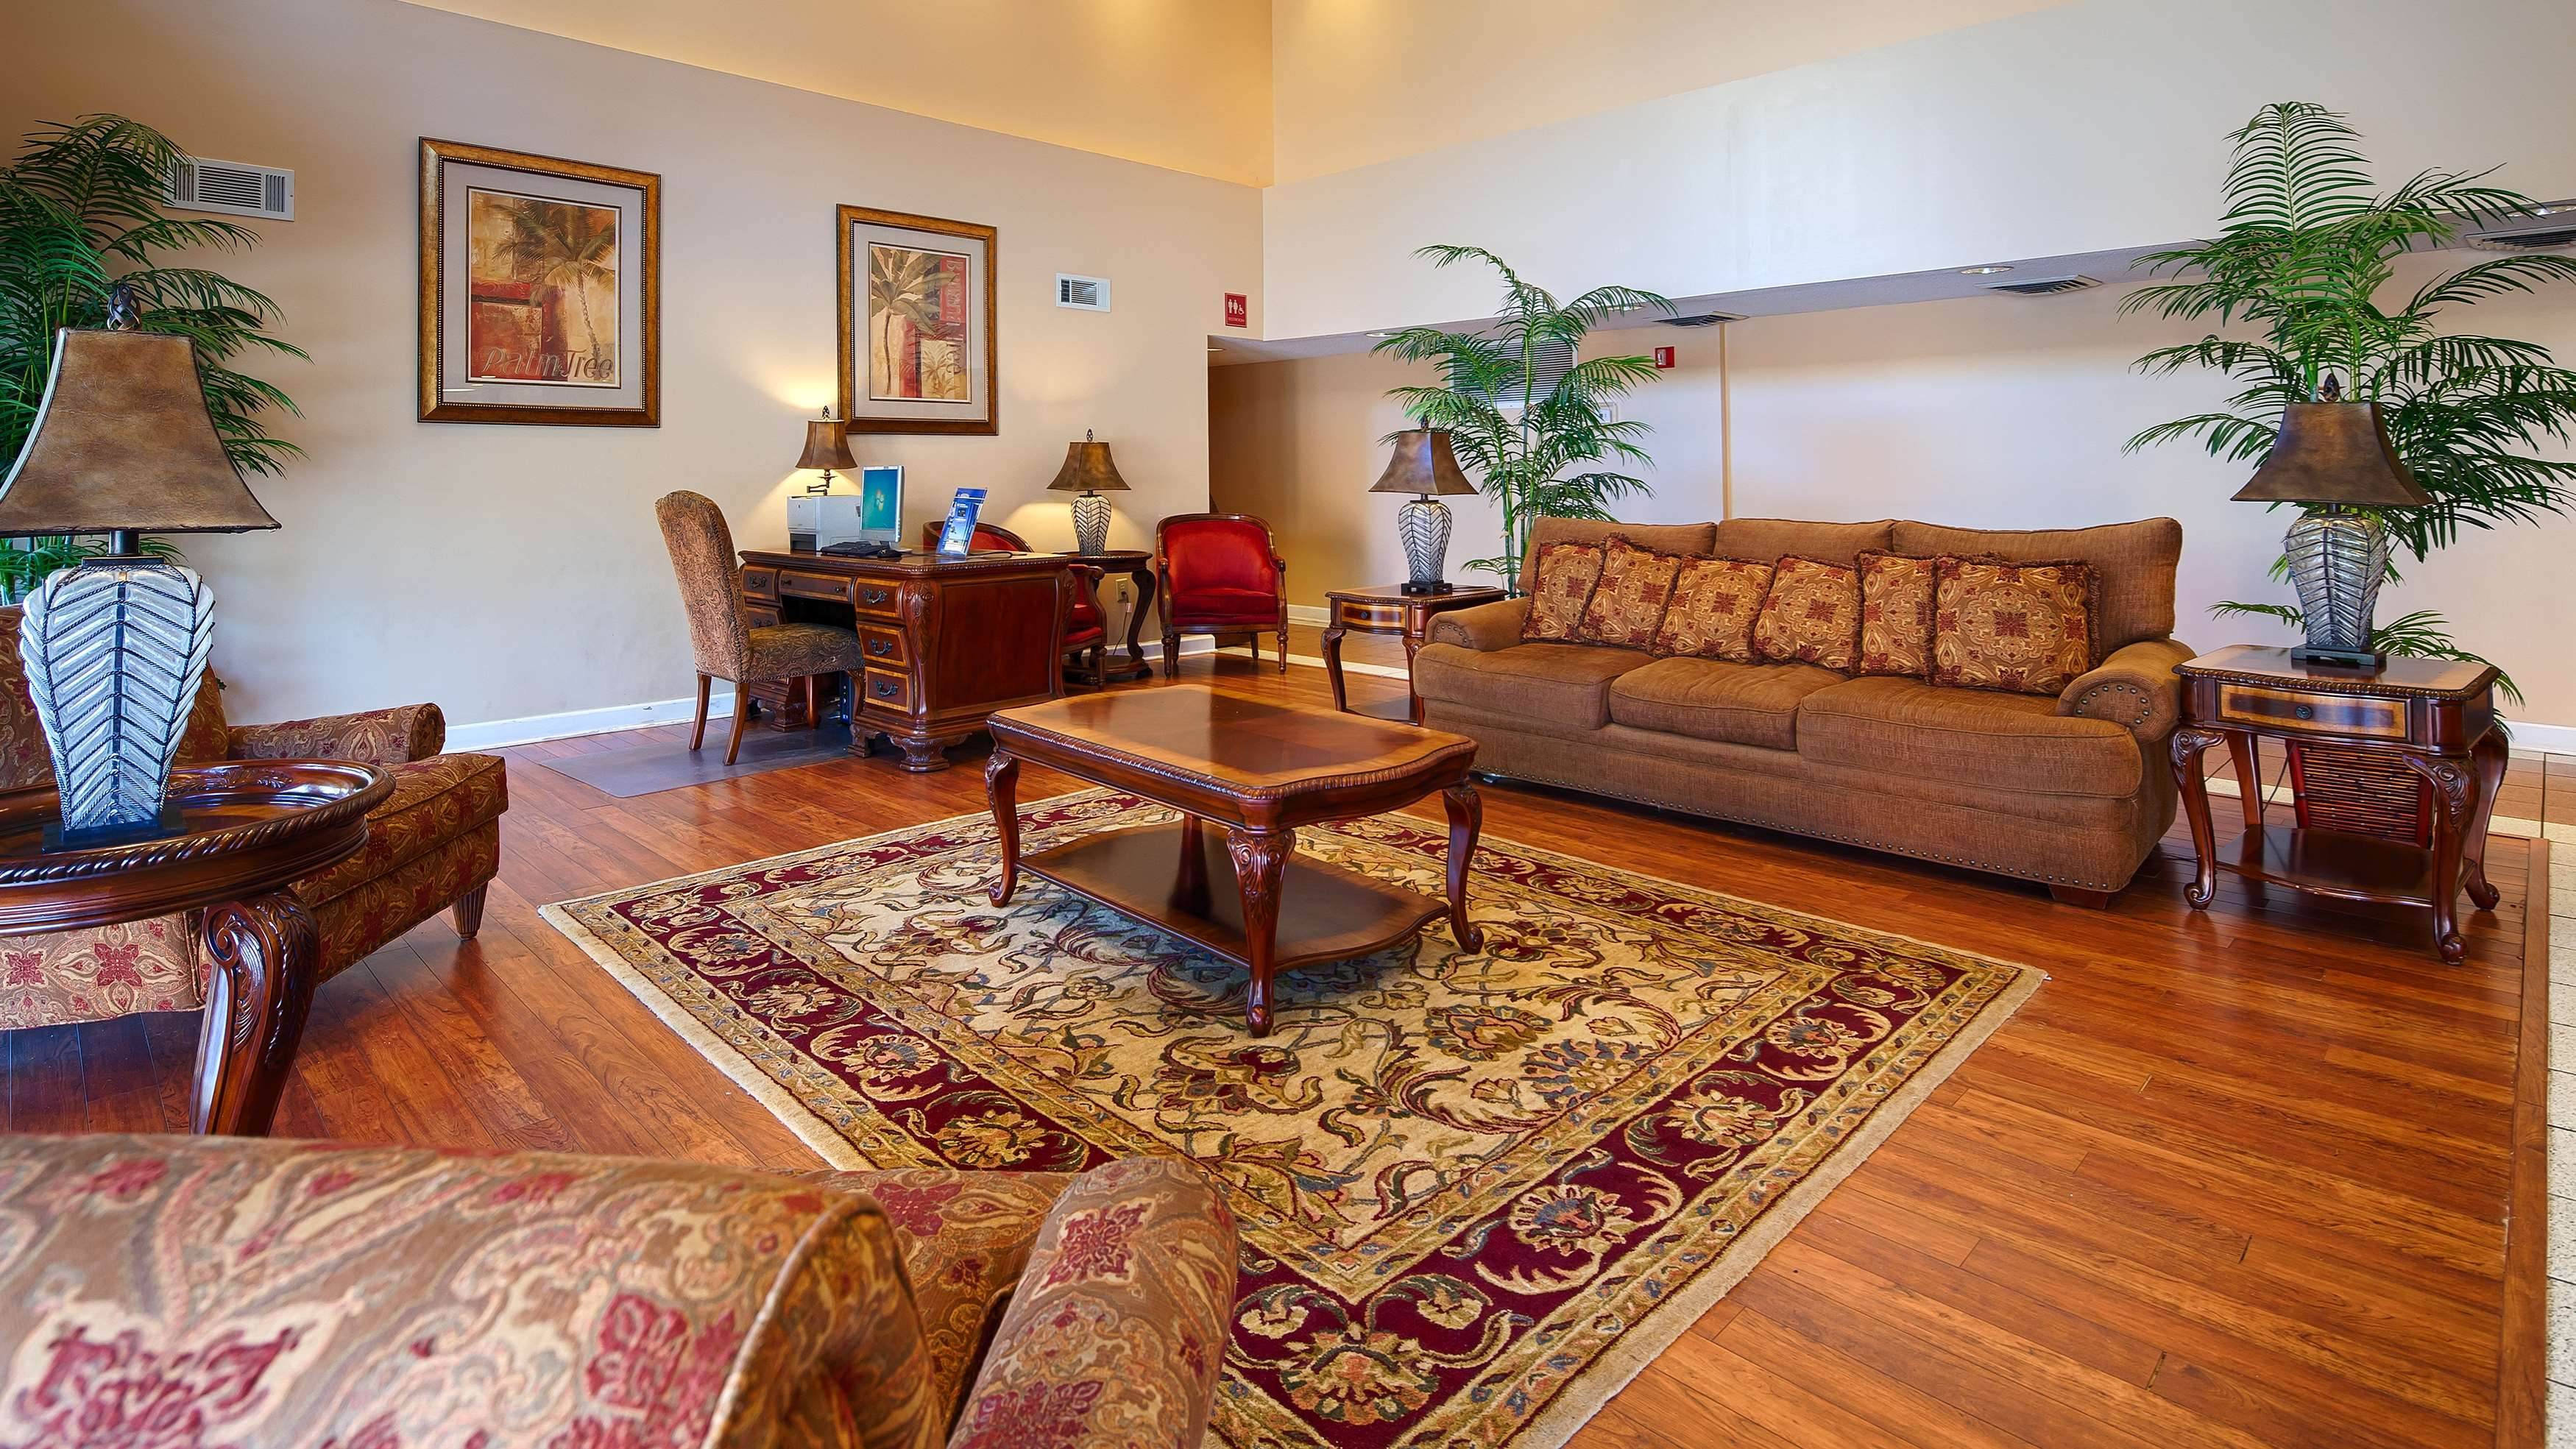 Best Western Tallahassee-Downtown Inn & Suites image 12